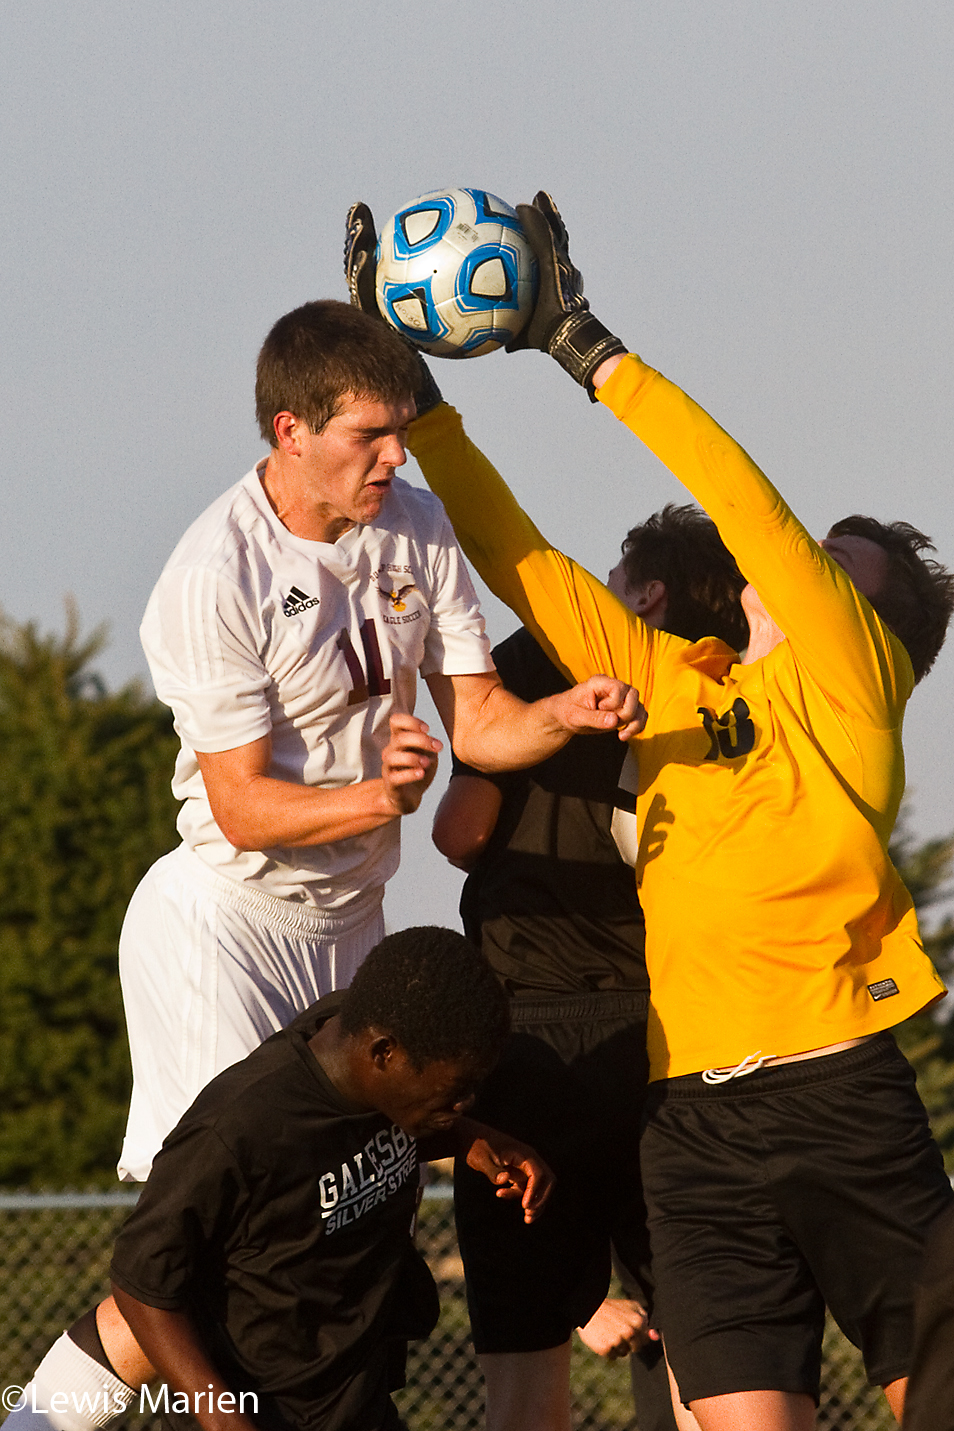 Galesburg goalkeeper Jonathan Whittle, right, blocks a header from Dunlap's Clint Koehler during a Class 2A regional semifinal match on Oct. 21 at Charger Field in Orion, Ill. The Streaks lost to the Eagles 7-0.